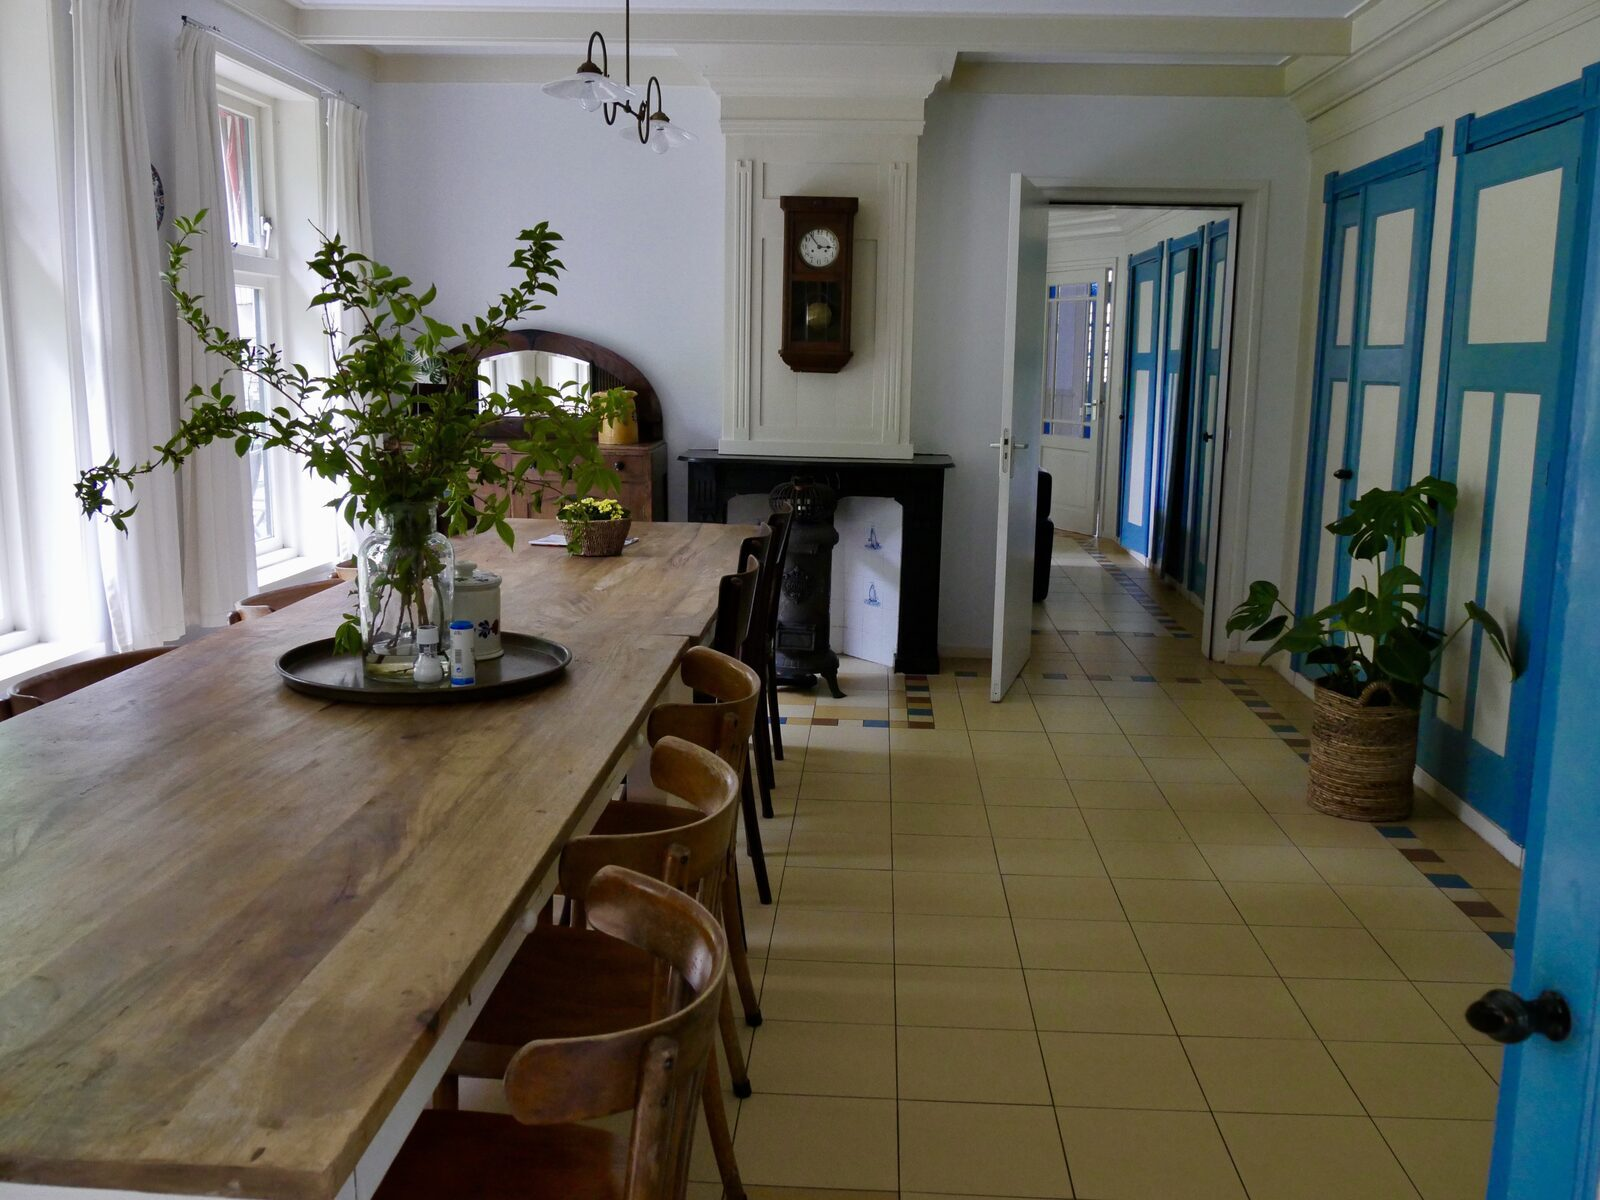 GROEPEN NL - 780+ group accommodation for small and large groups